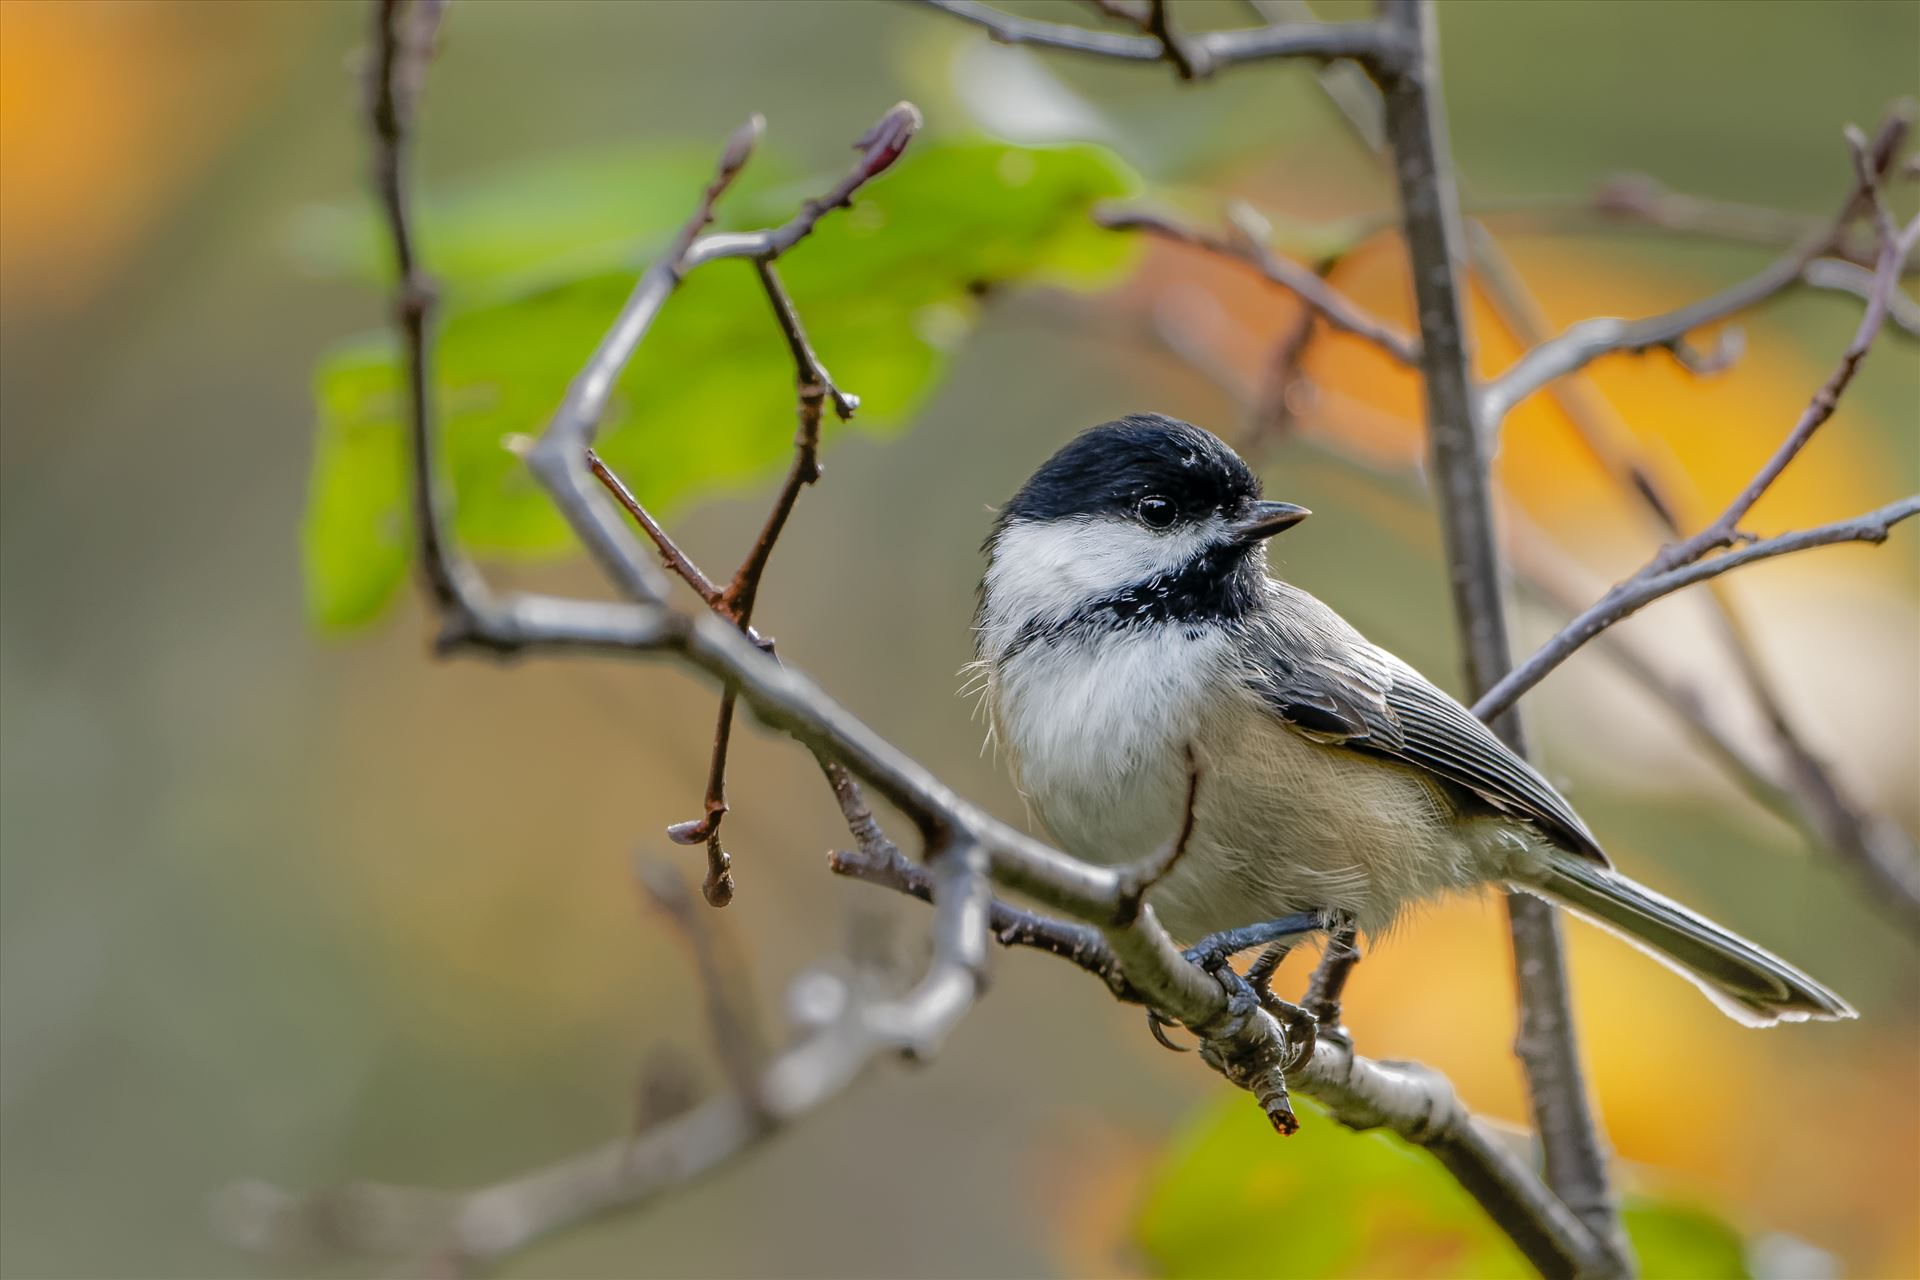 Black- Capped Chickadee - Photographed in October 2014 in Northern, Maine by Buckmaster